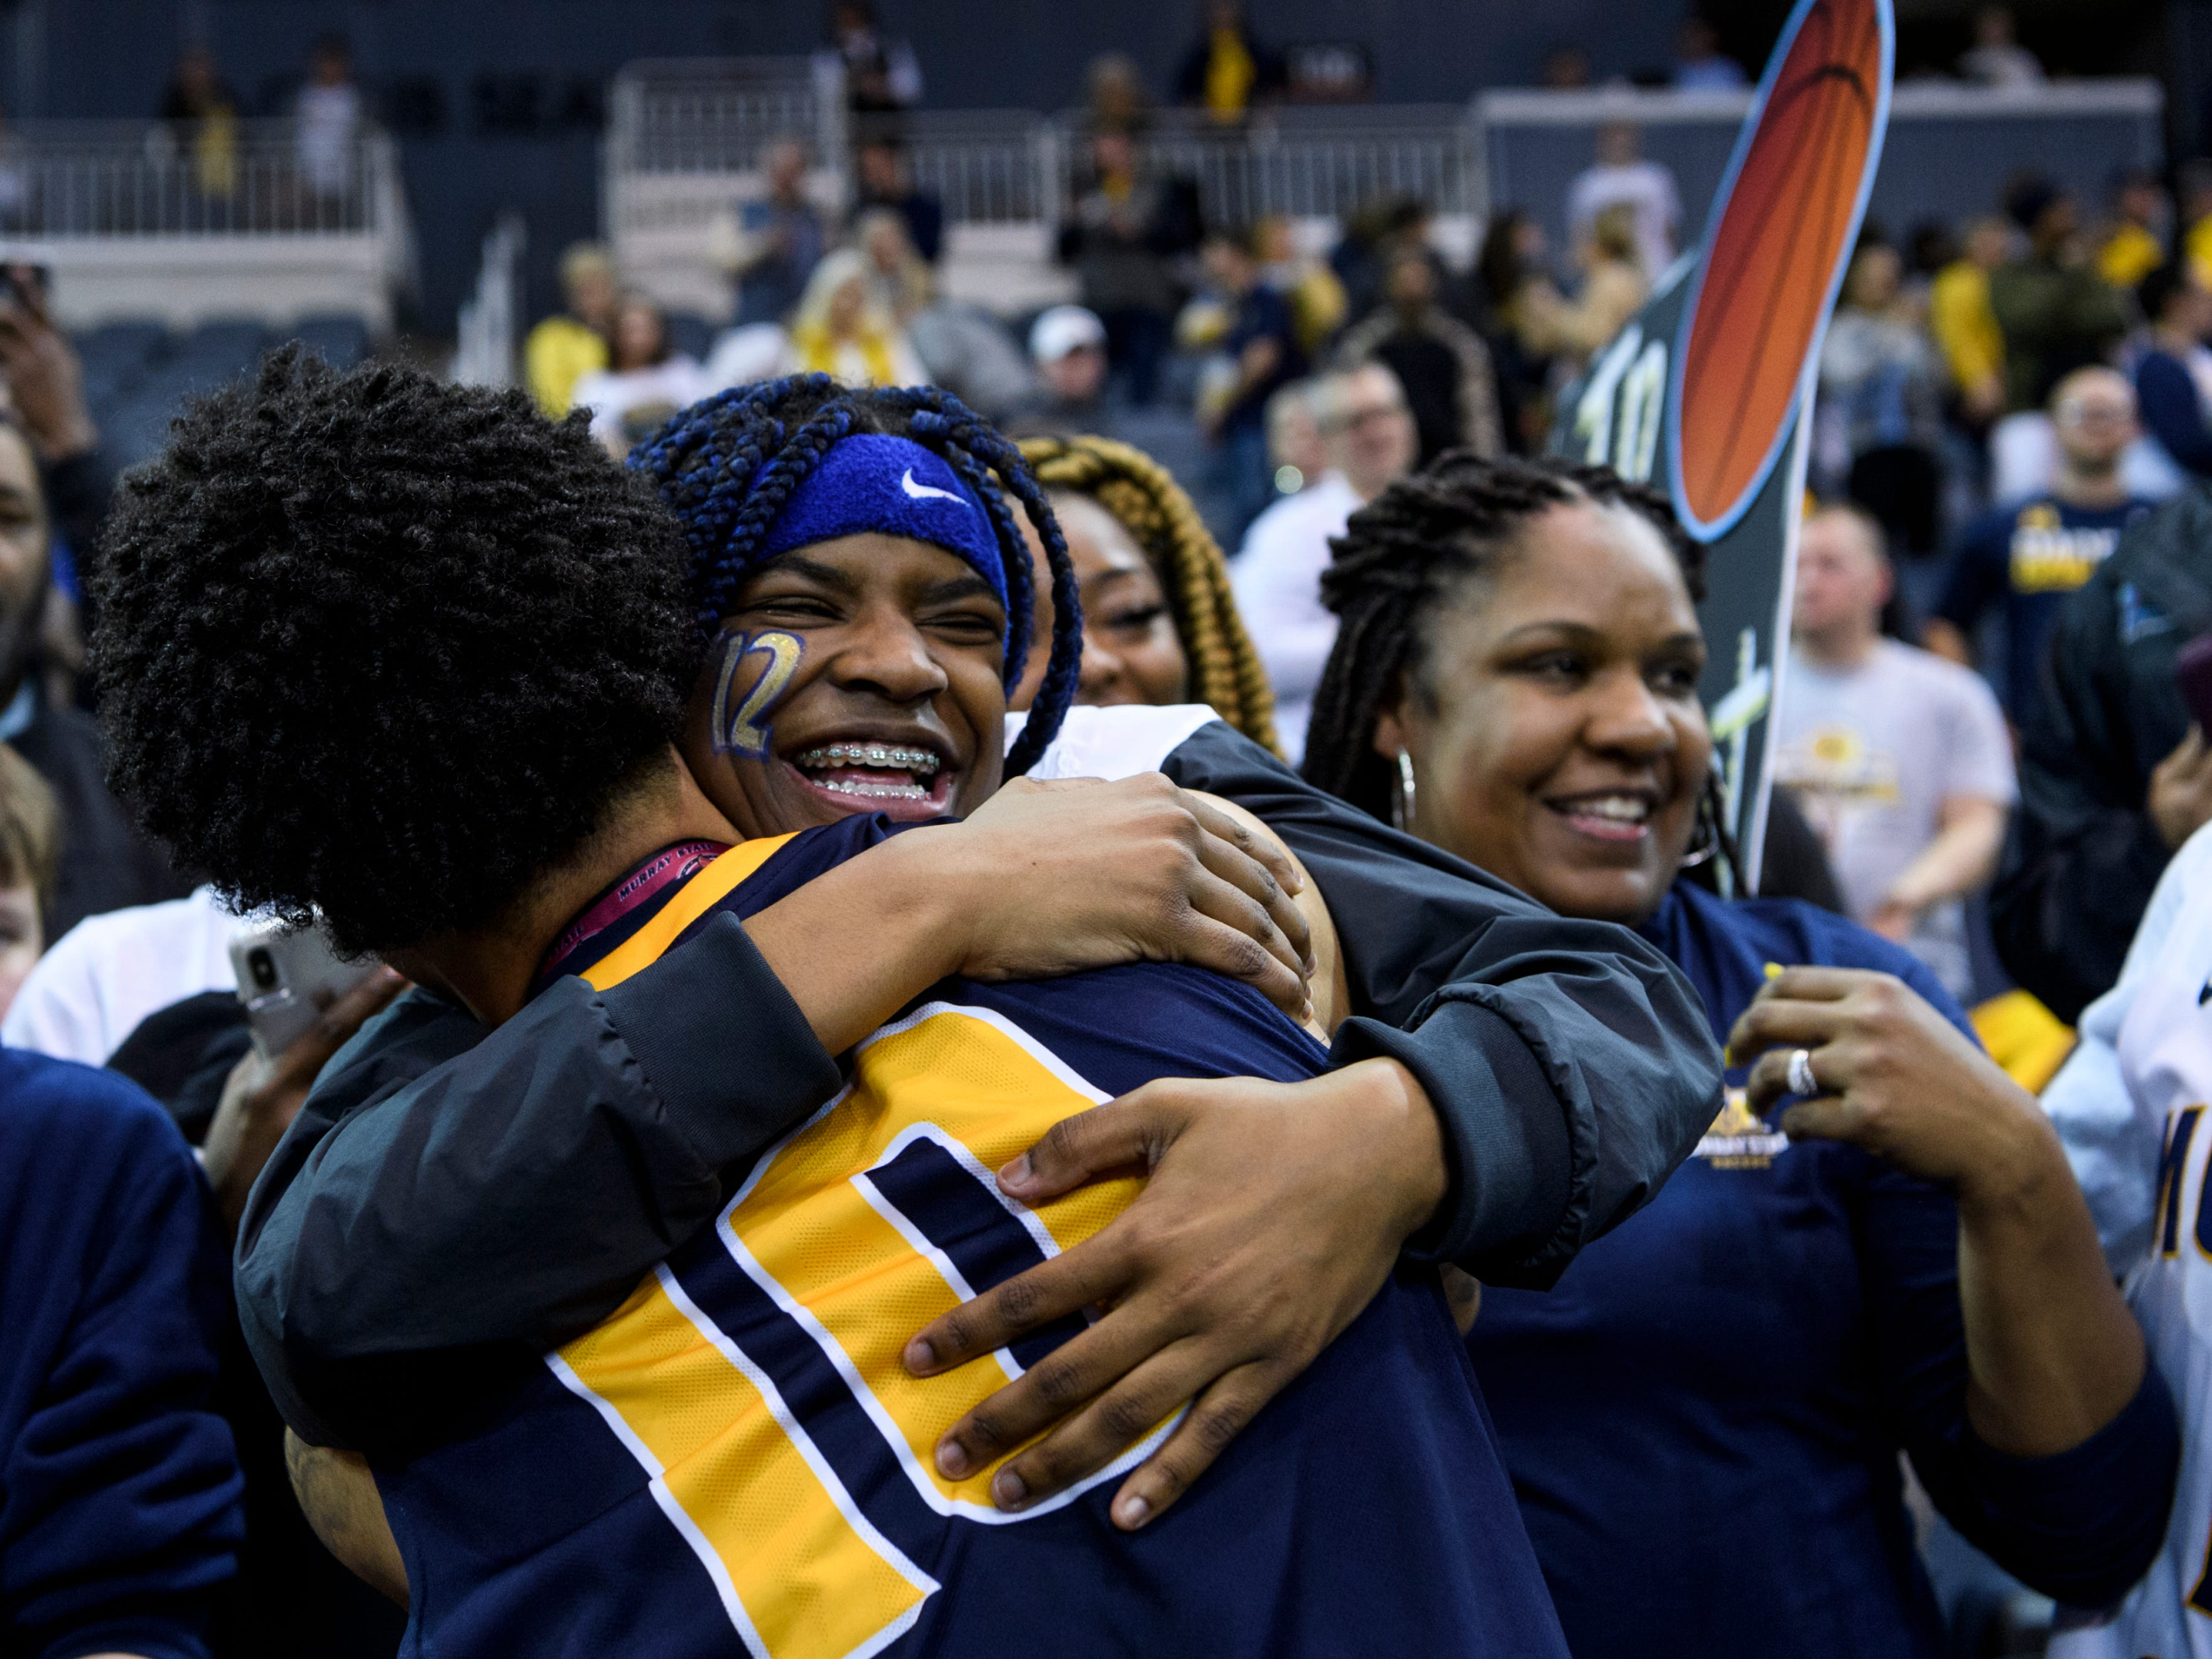 Murray State's Tevin Brown (10) receives a hug from Teniya Morant, Ja Morant's sister, following their Ohio Valley Conference championship win at Ford Center in Evansville, Ind., Saturday, March 9, 2019. The Racers earned the OVC men's championship title after defeating the Bruins, 77-65.